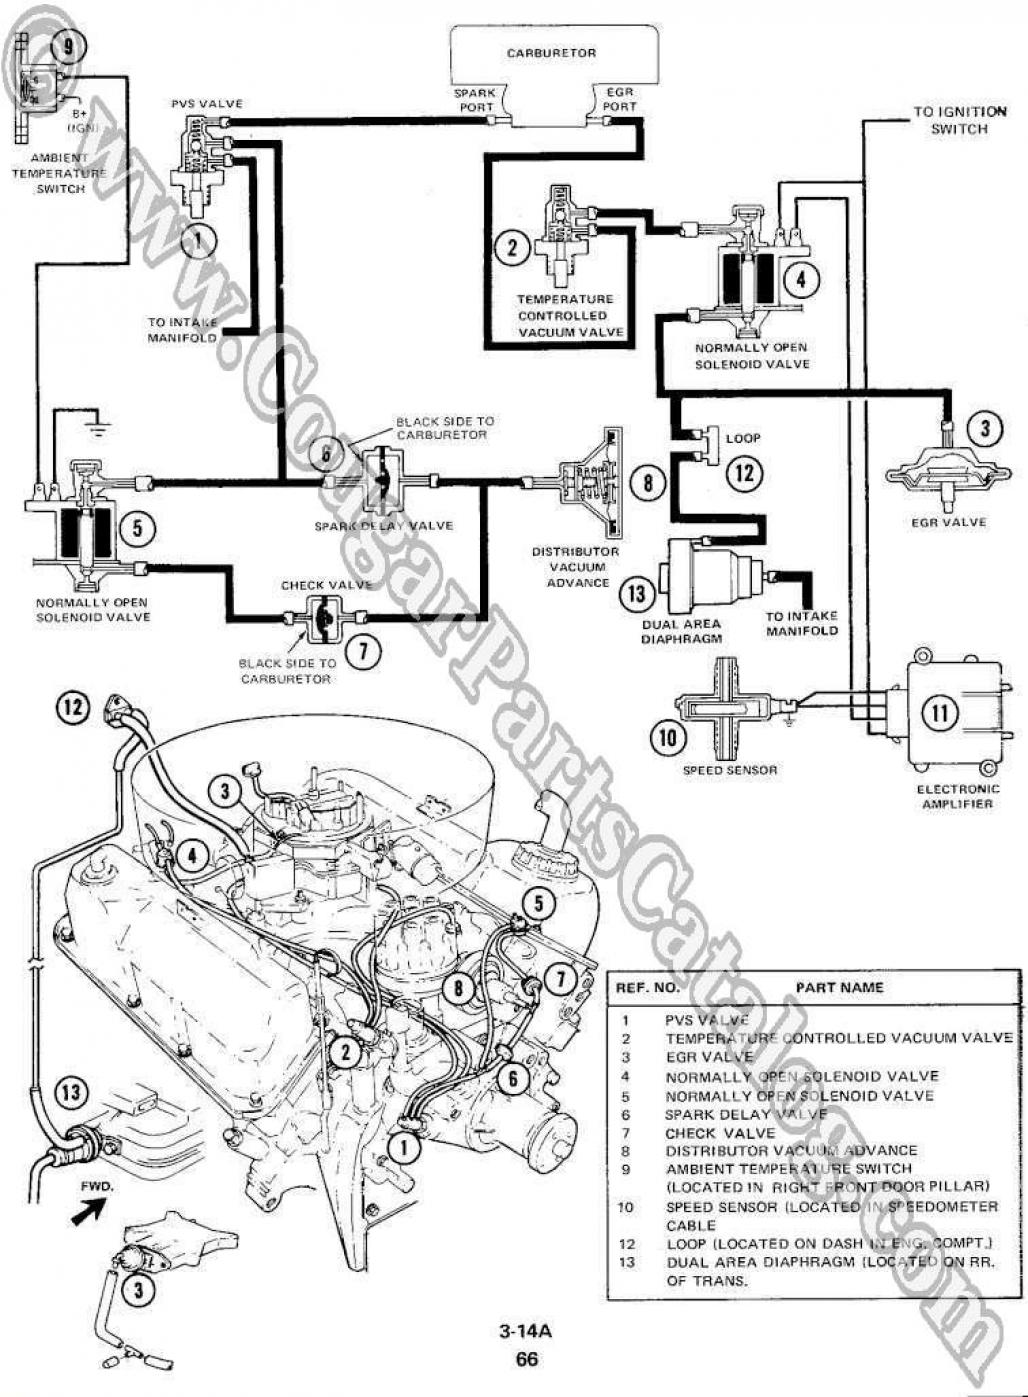 73 Cougar Wiring Diagram Great Design Of Jeep Sound Bar Colors Shop Manual Engine Emission System Diagnosis Repro 1971 Parts 1973 Mercury